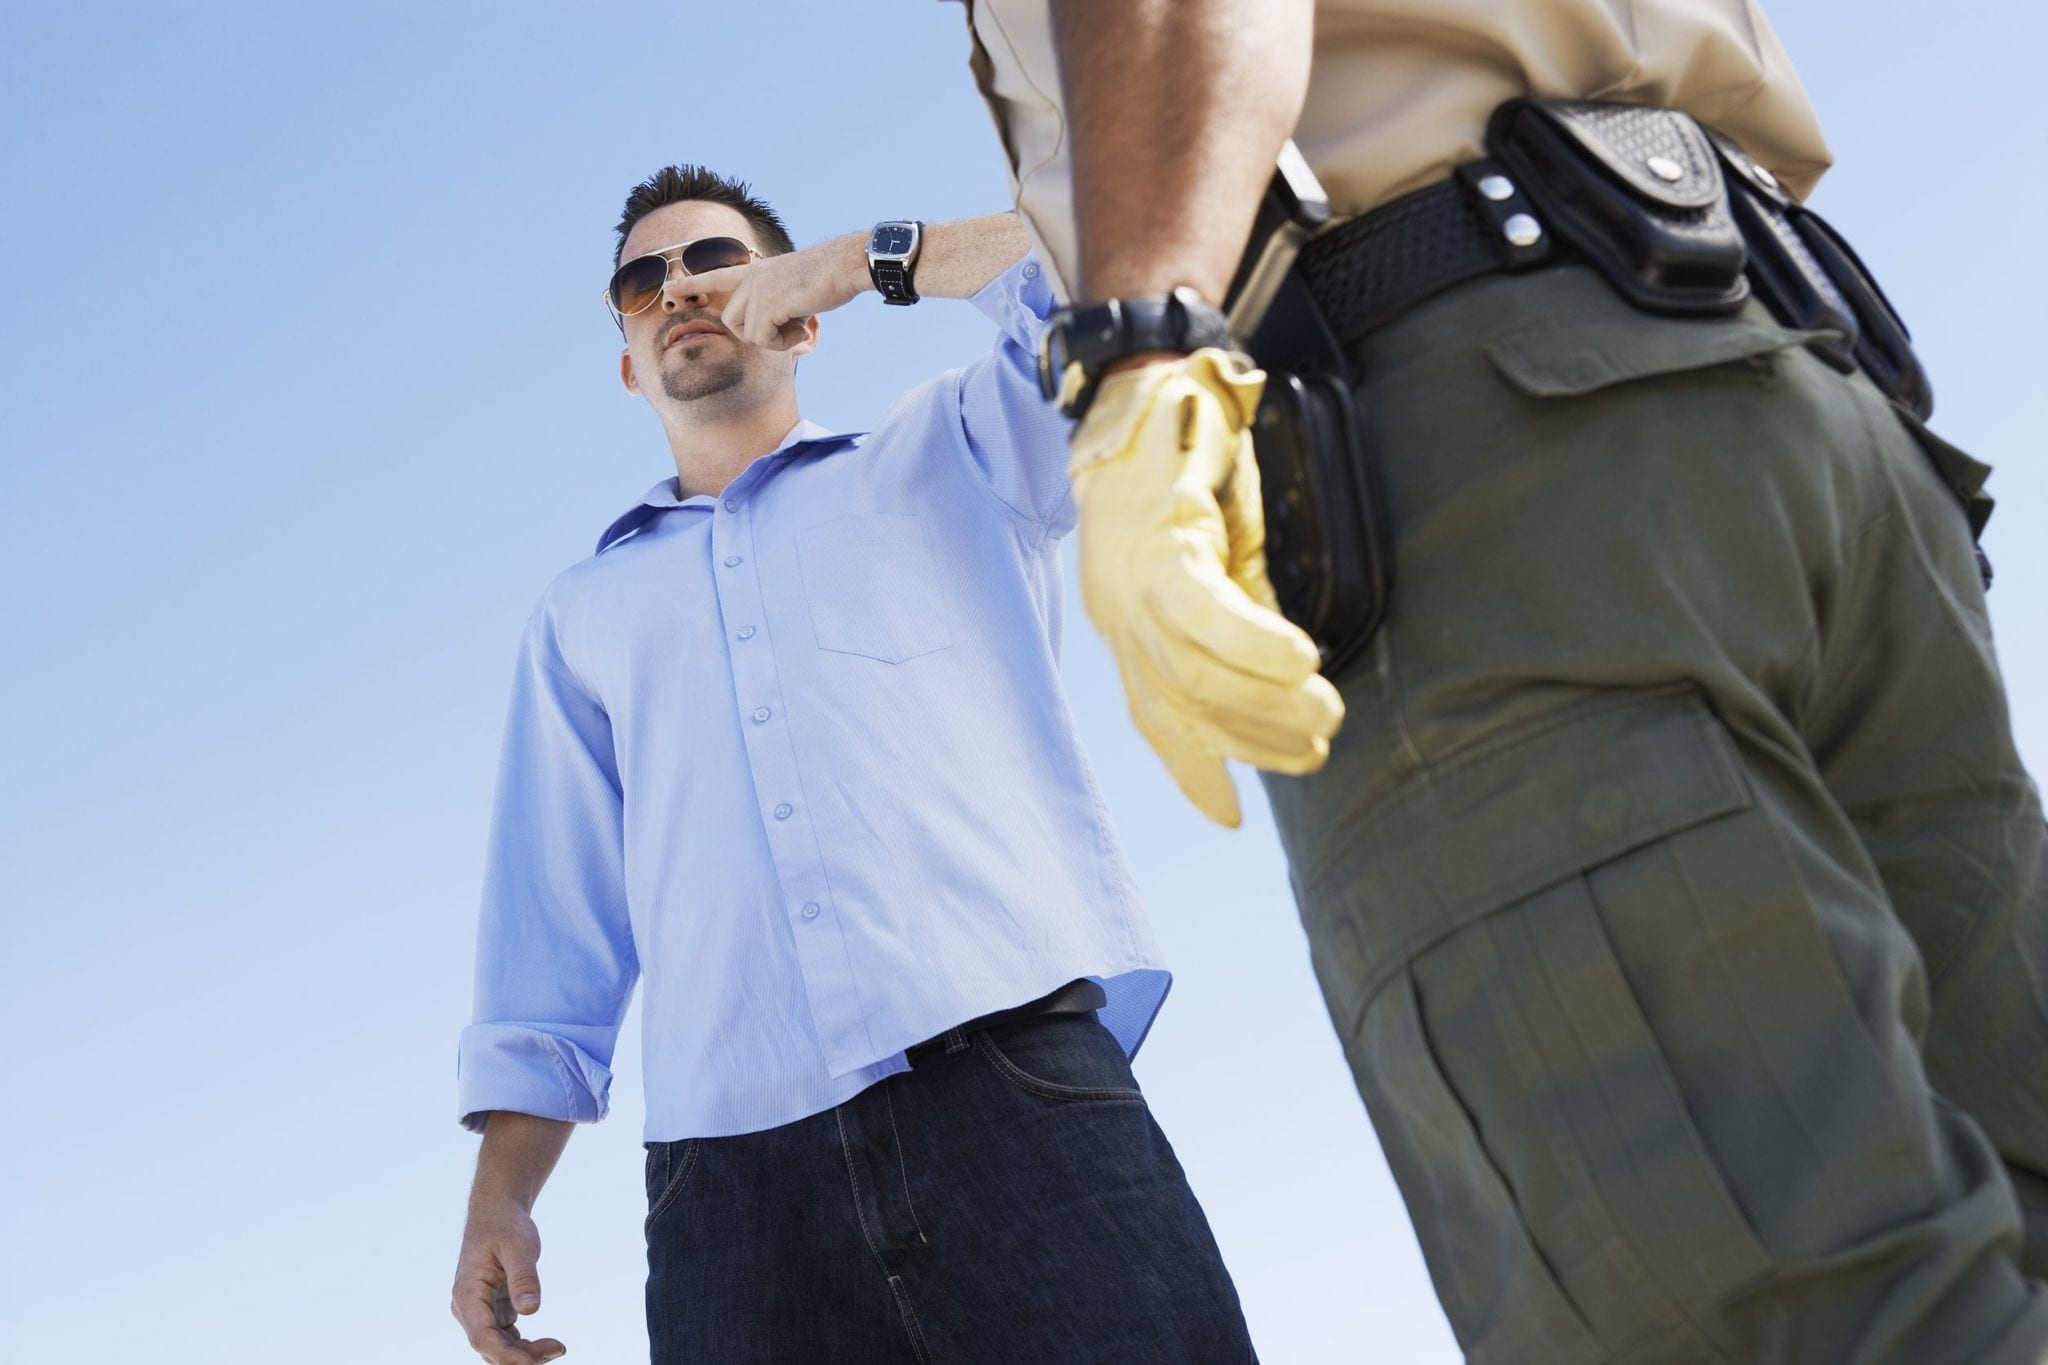 What You Can Expect If a Texas Officer Pulls You Over for DWI